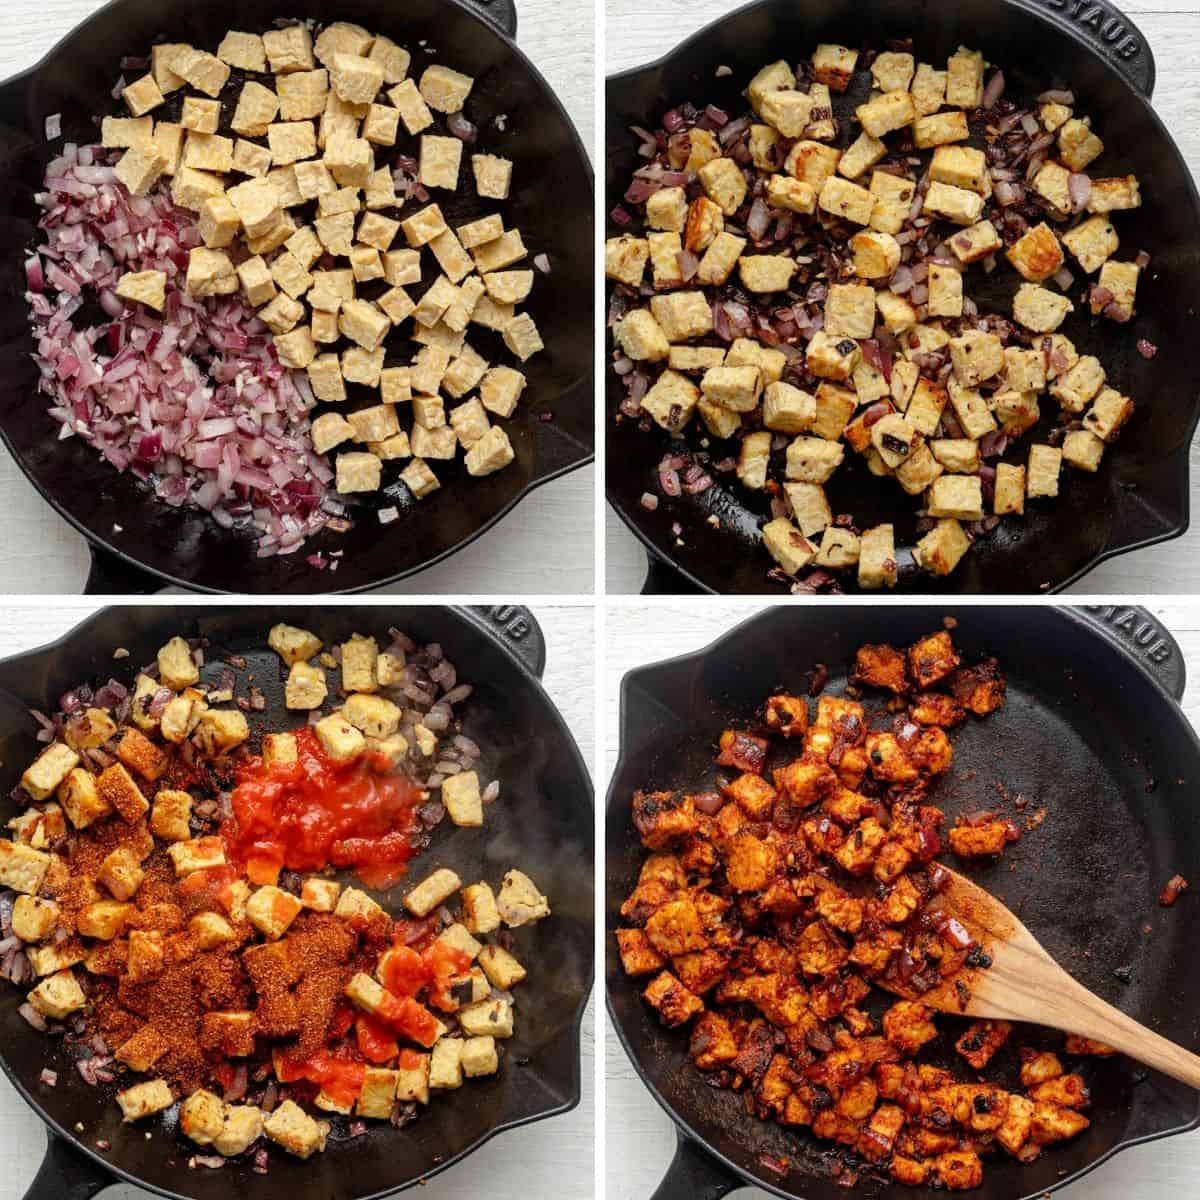 Process shots to show how to cook the tempeh in a skillet with the onions and seasoning